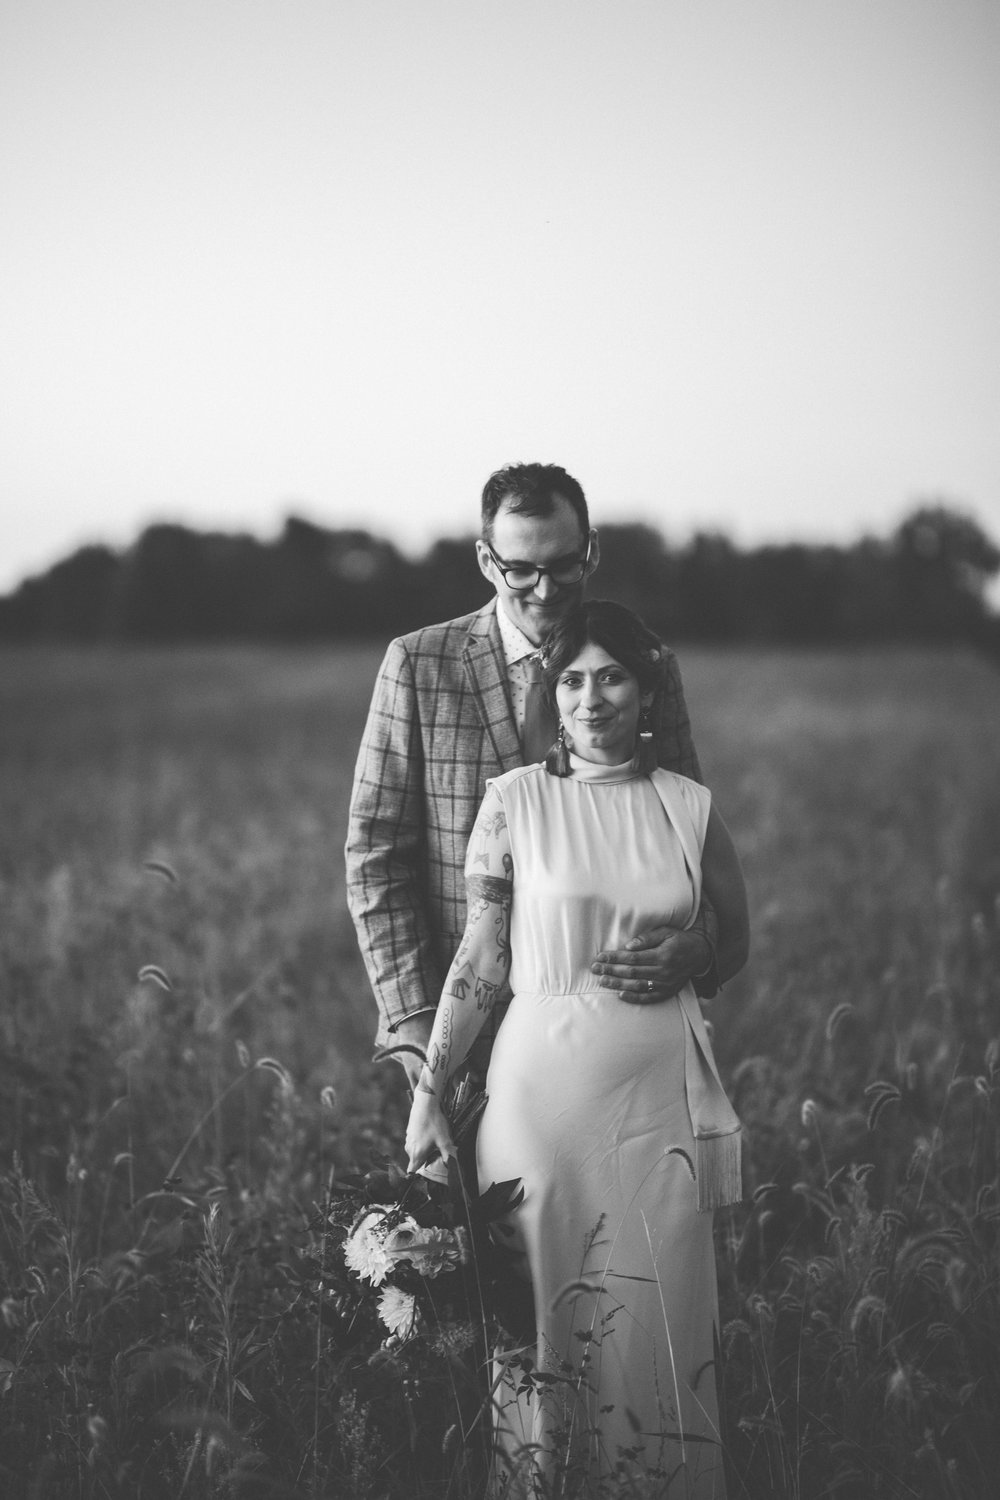 Carrie Hall Photography // Cleveland, Ohio // Lifestyle and Documentary Wedding Photographer